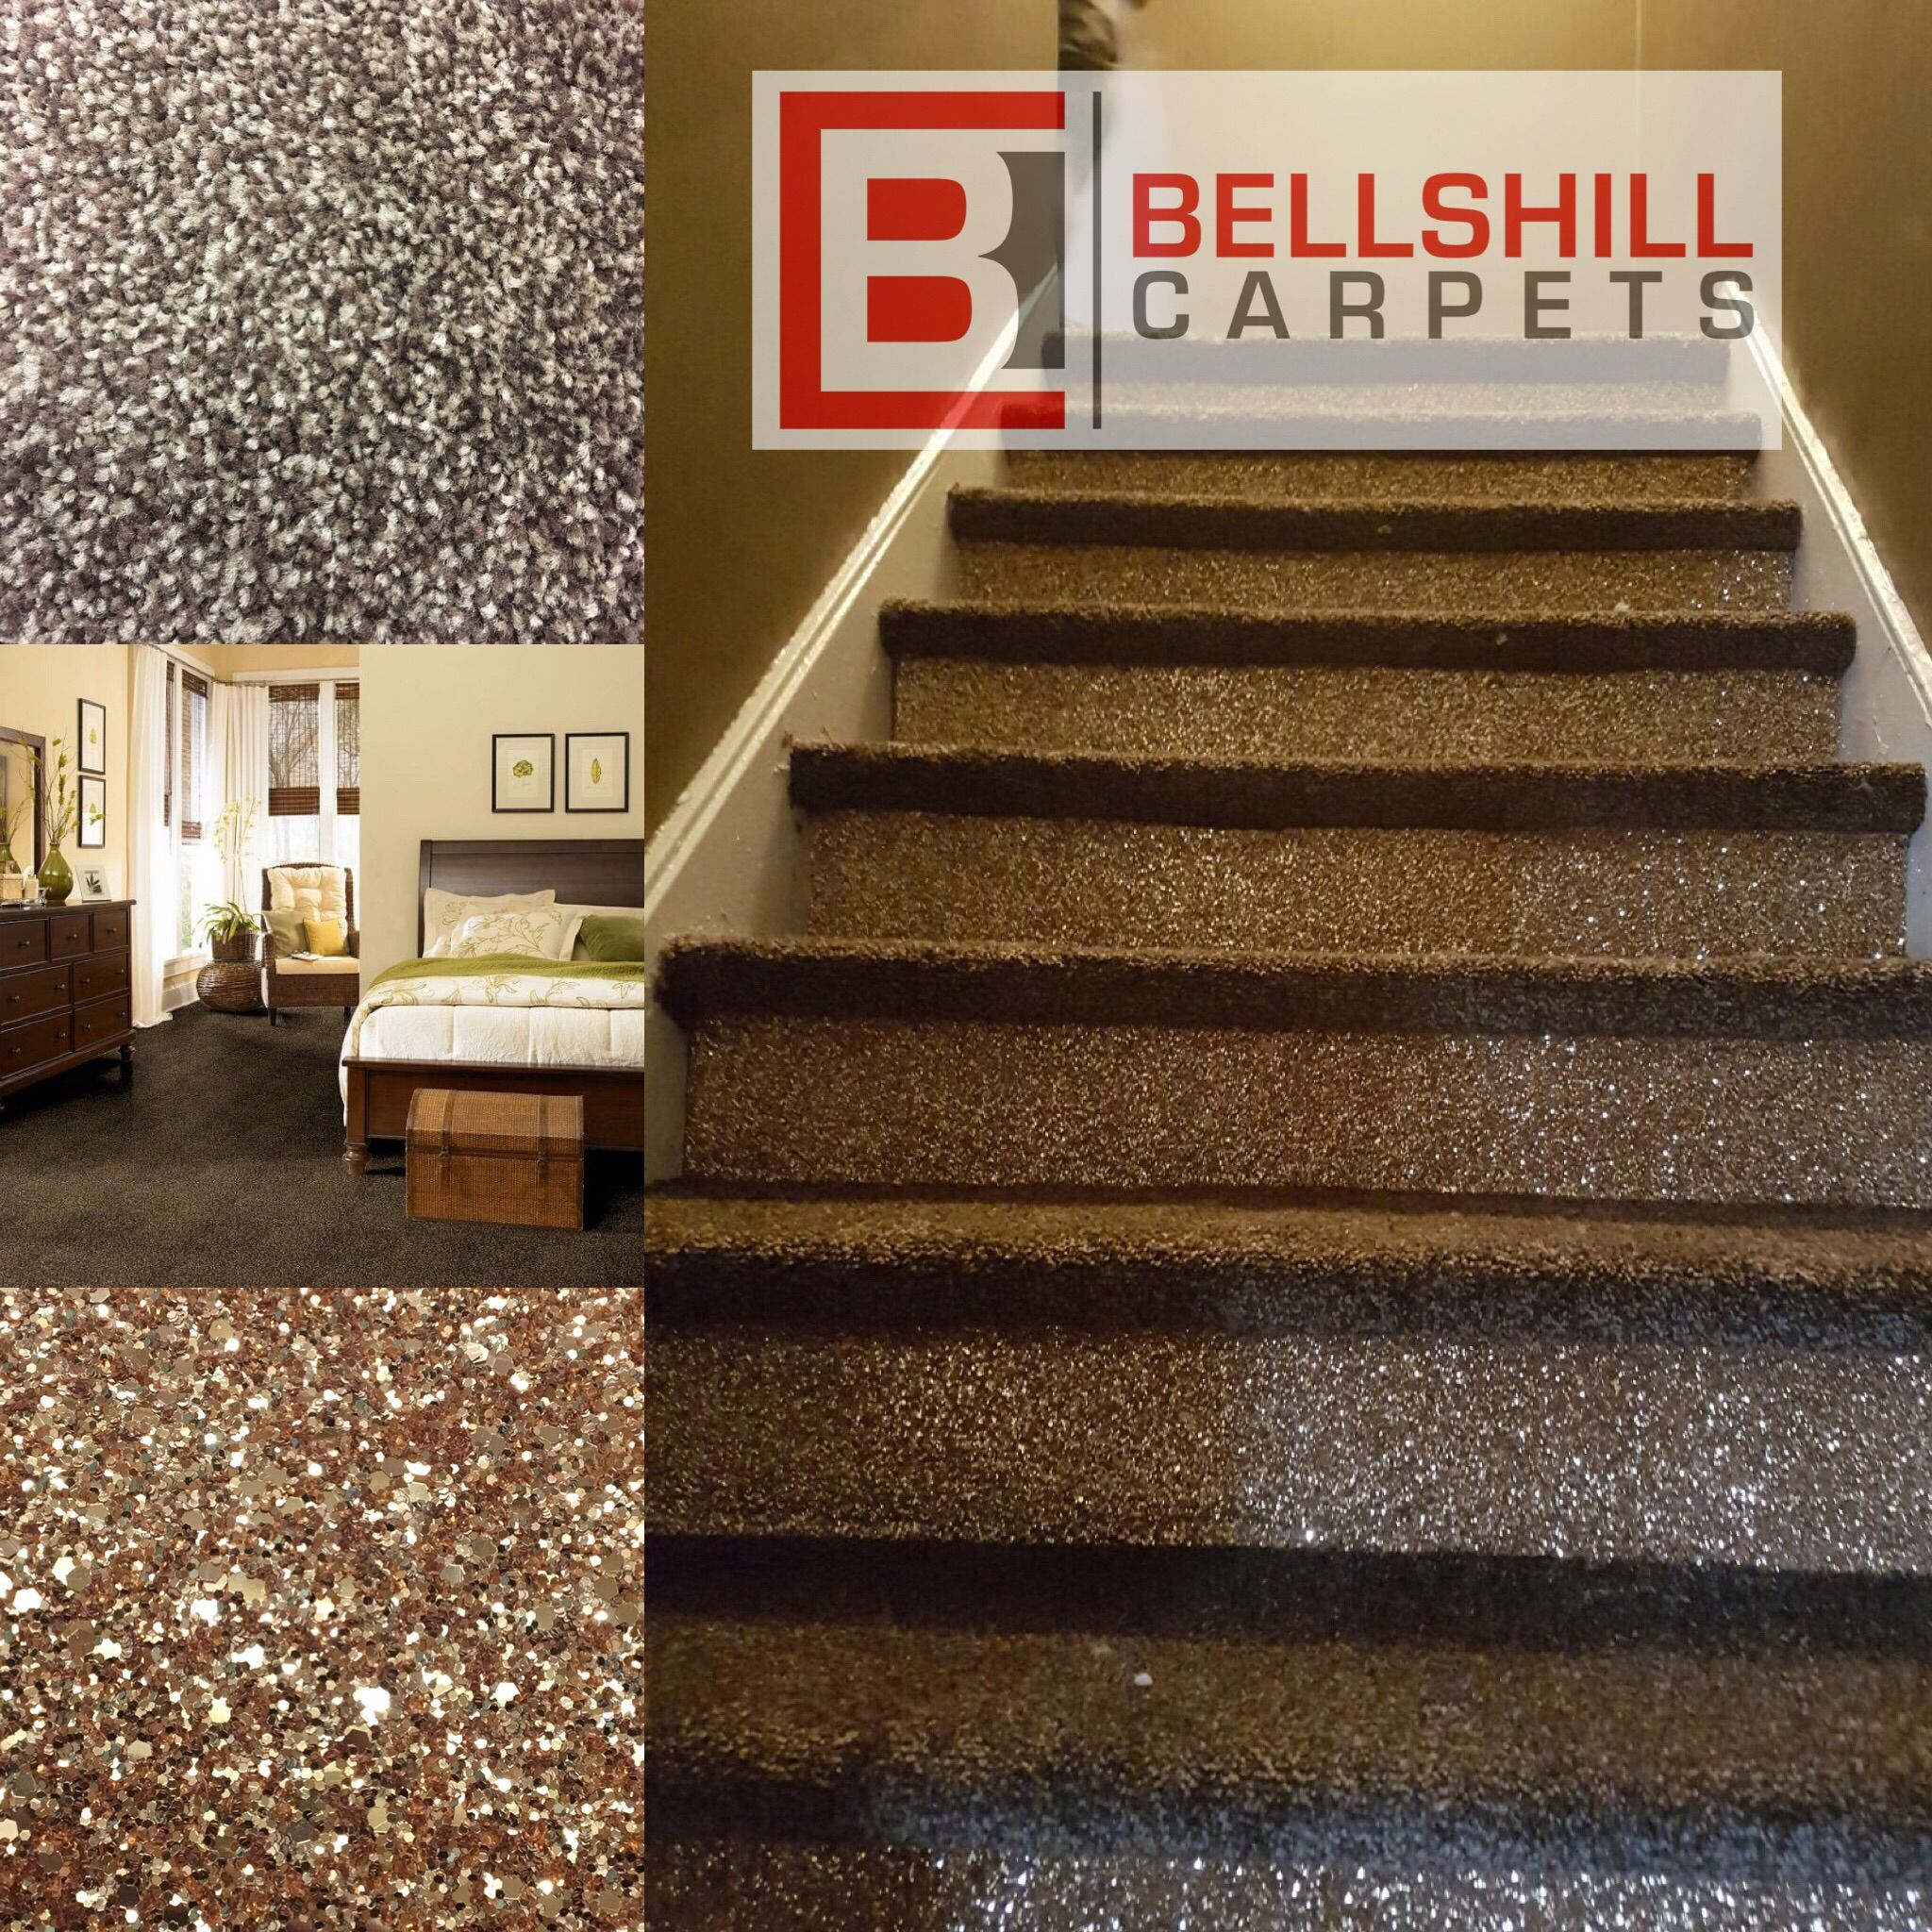 Best Pin By Bellshill Carpets On Glitter Stairs With Images 640 x 480